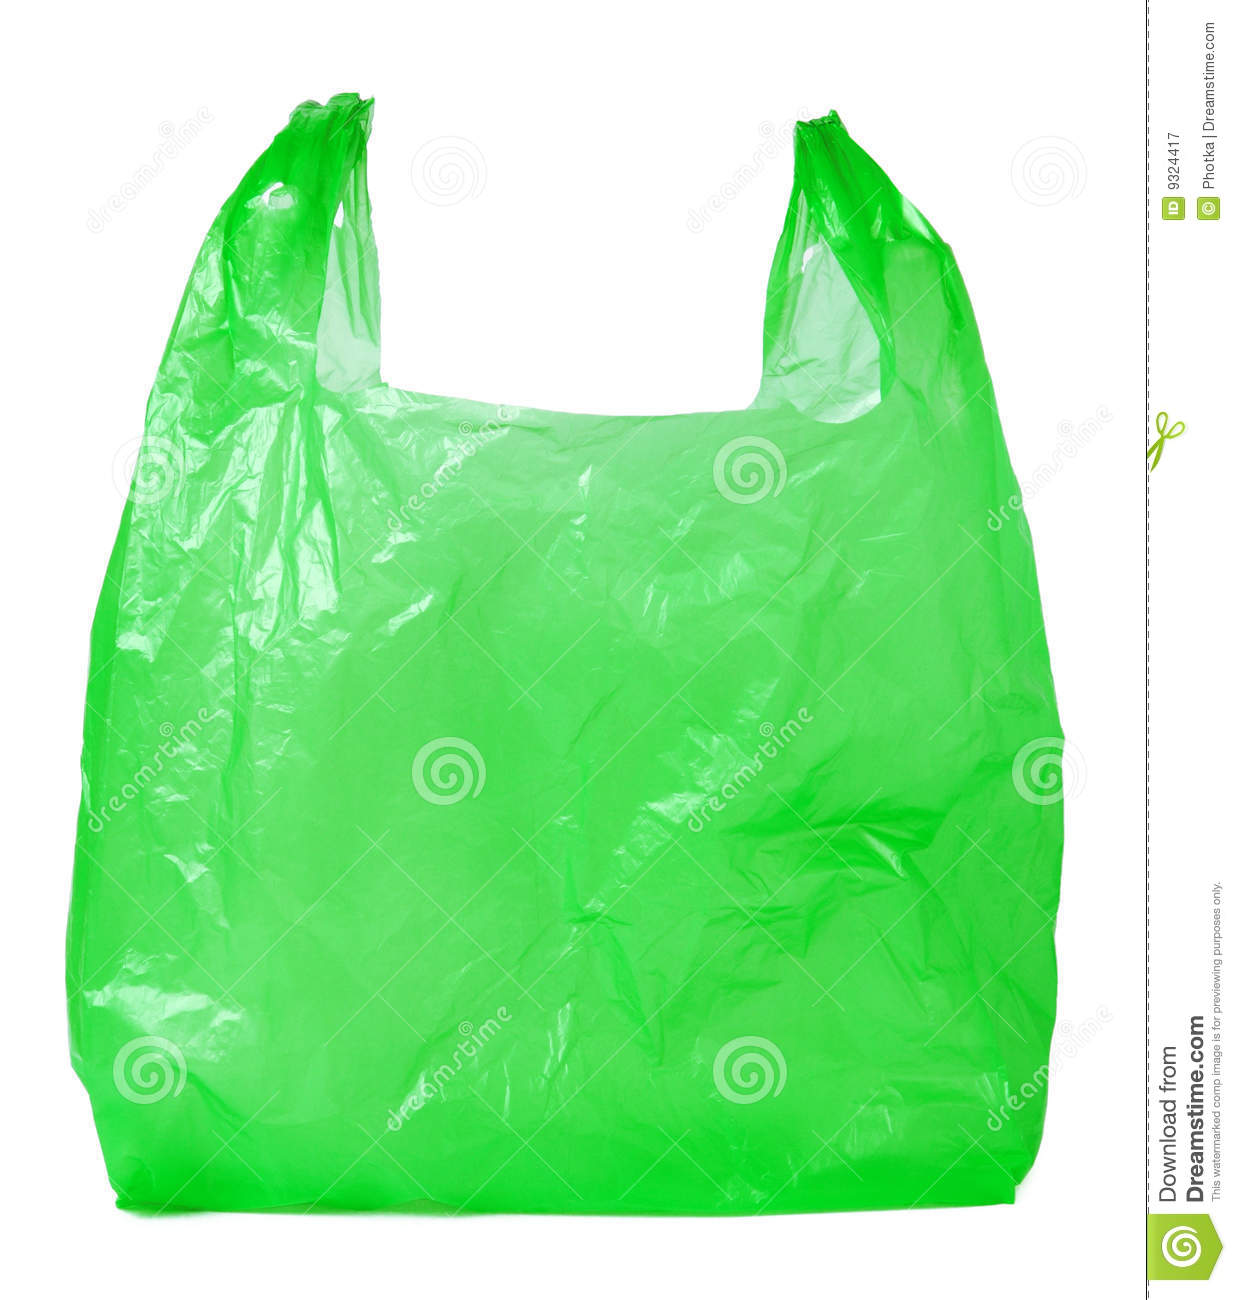 Plastic Bag Royalty Free Stock Photography - Image: 9324417